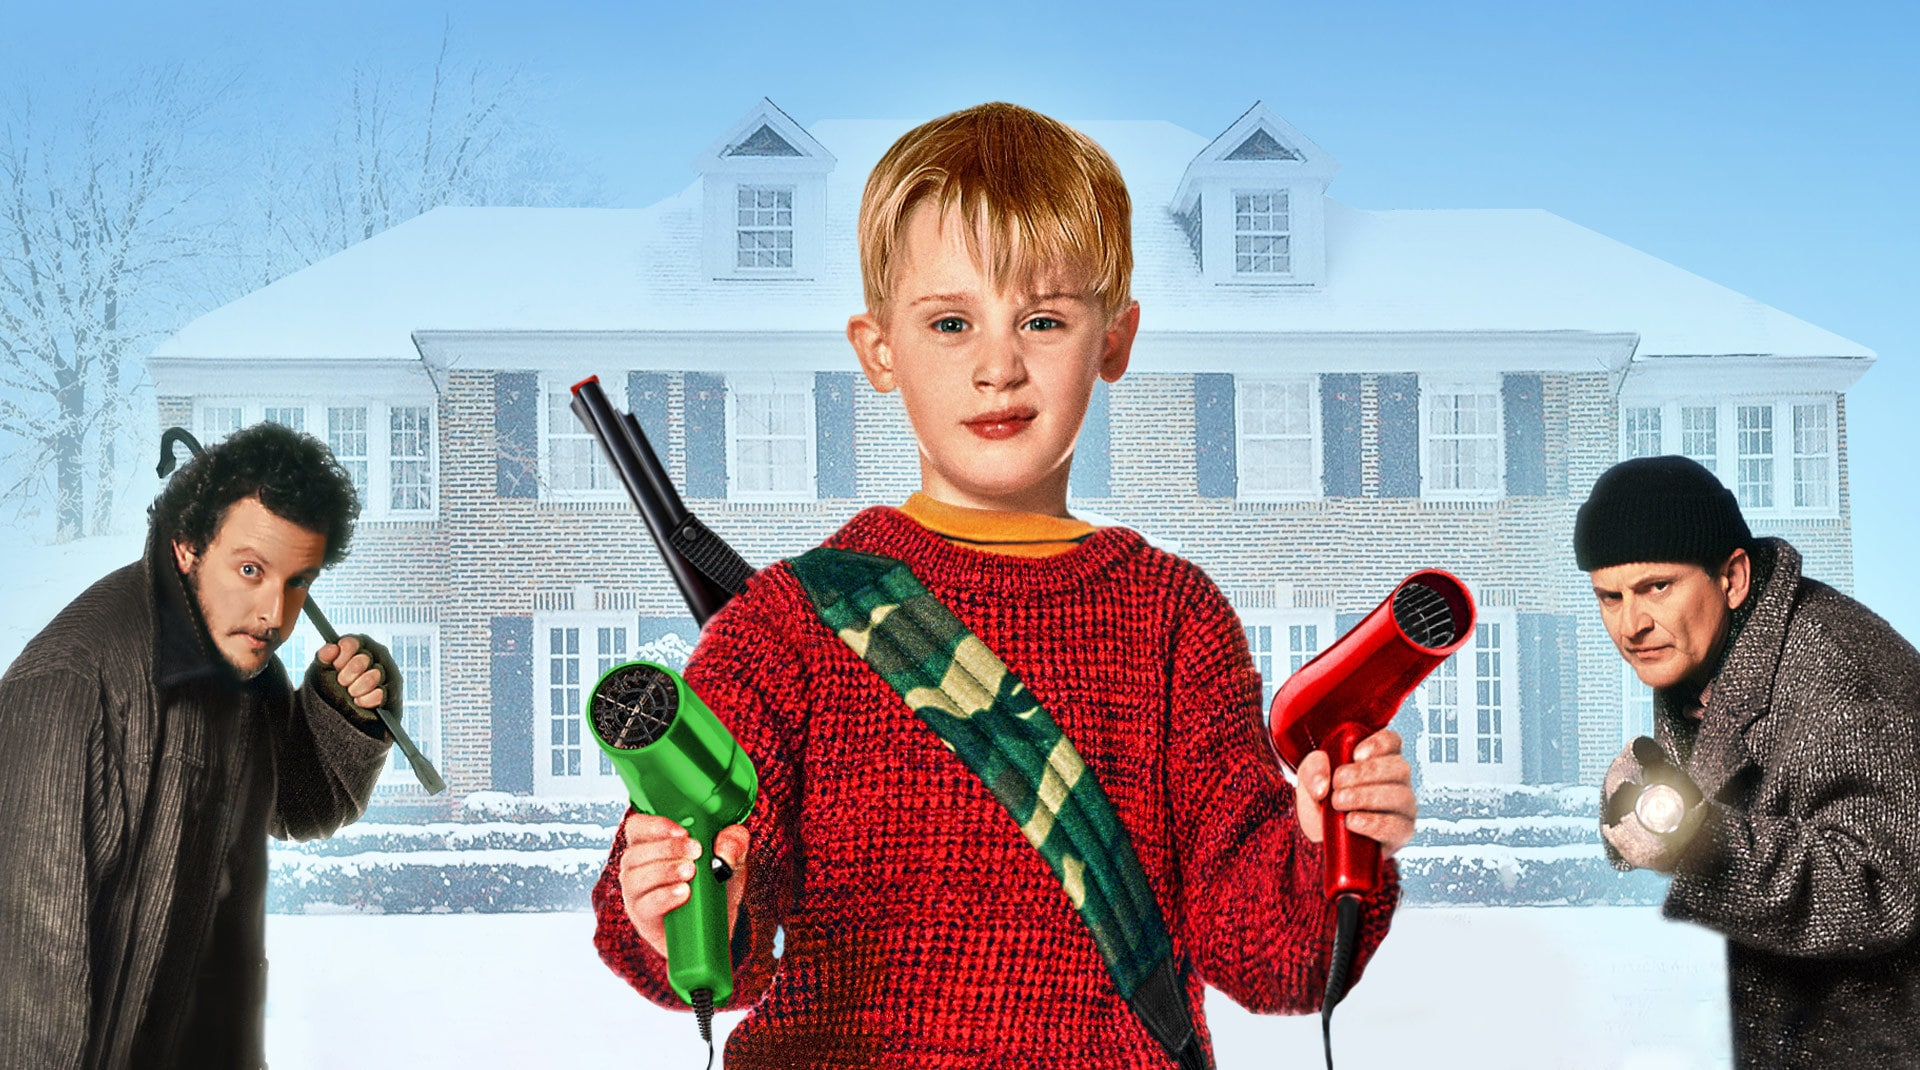 A still from Home Alone